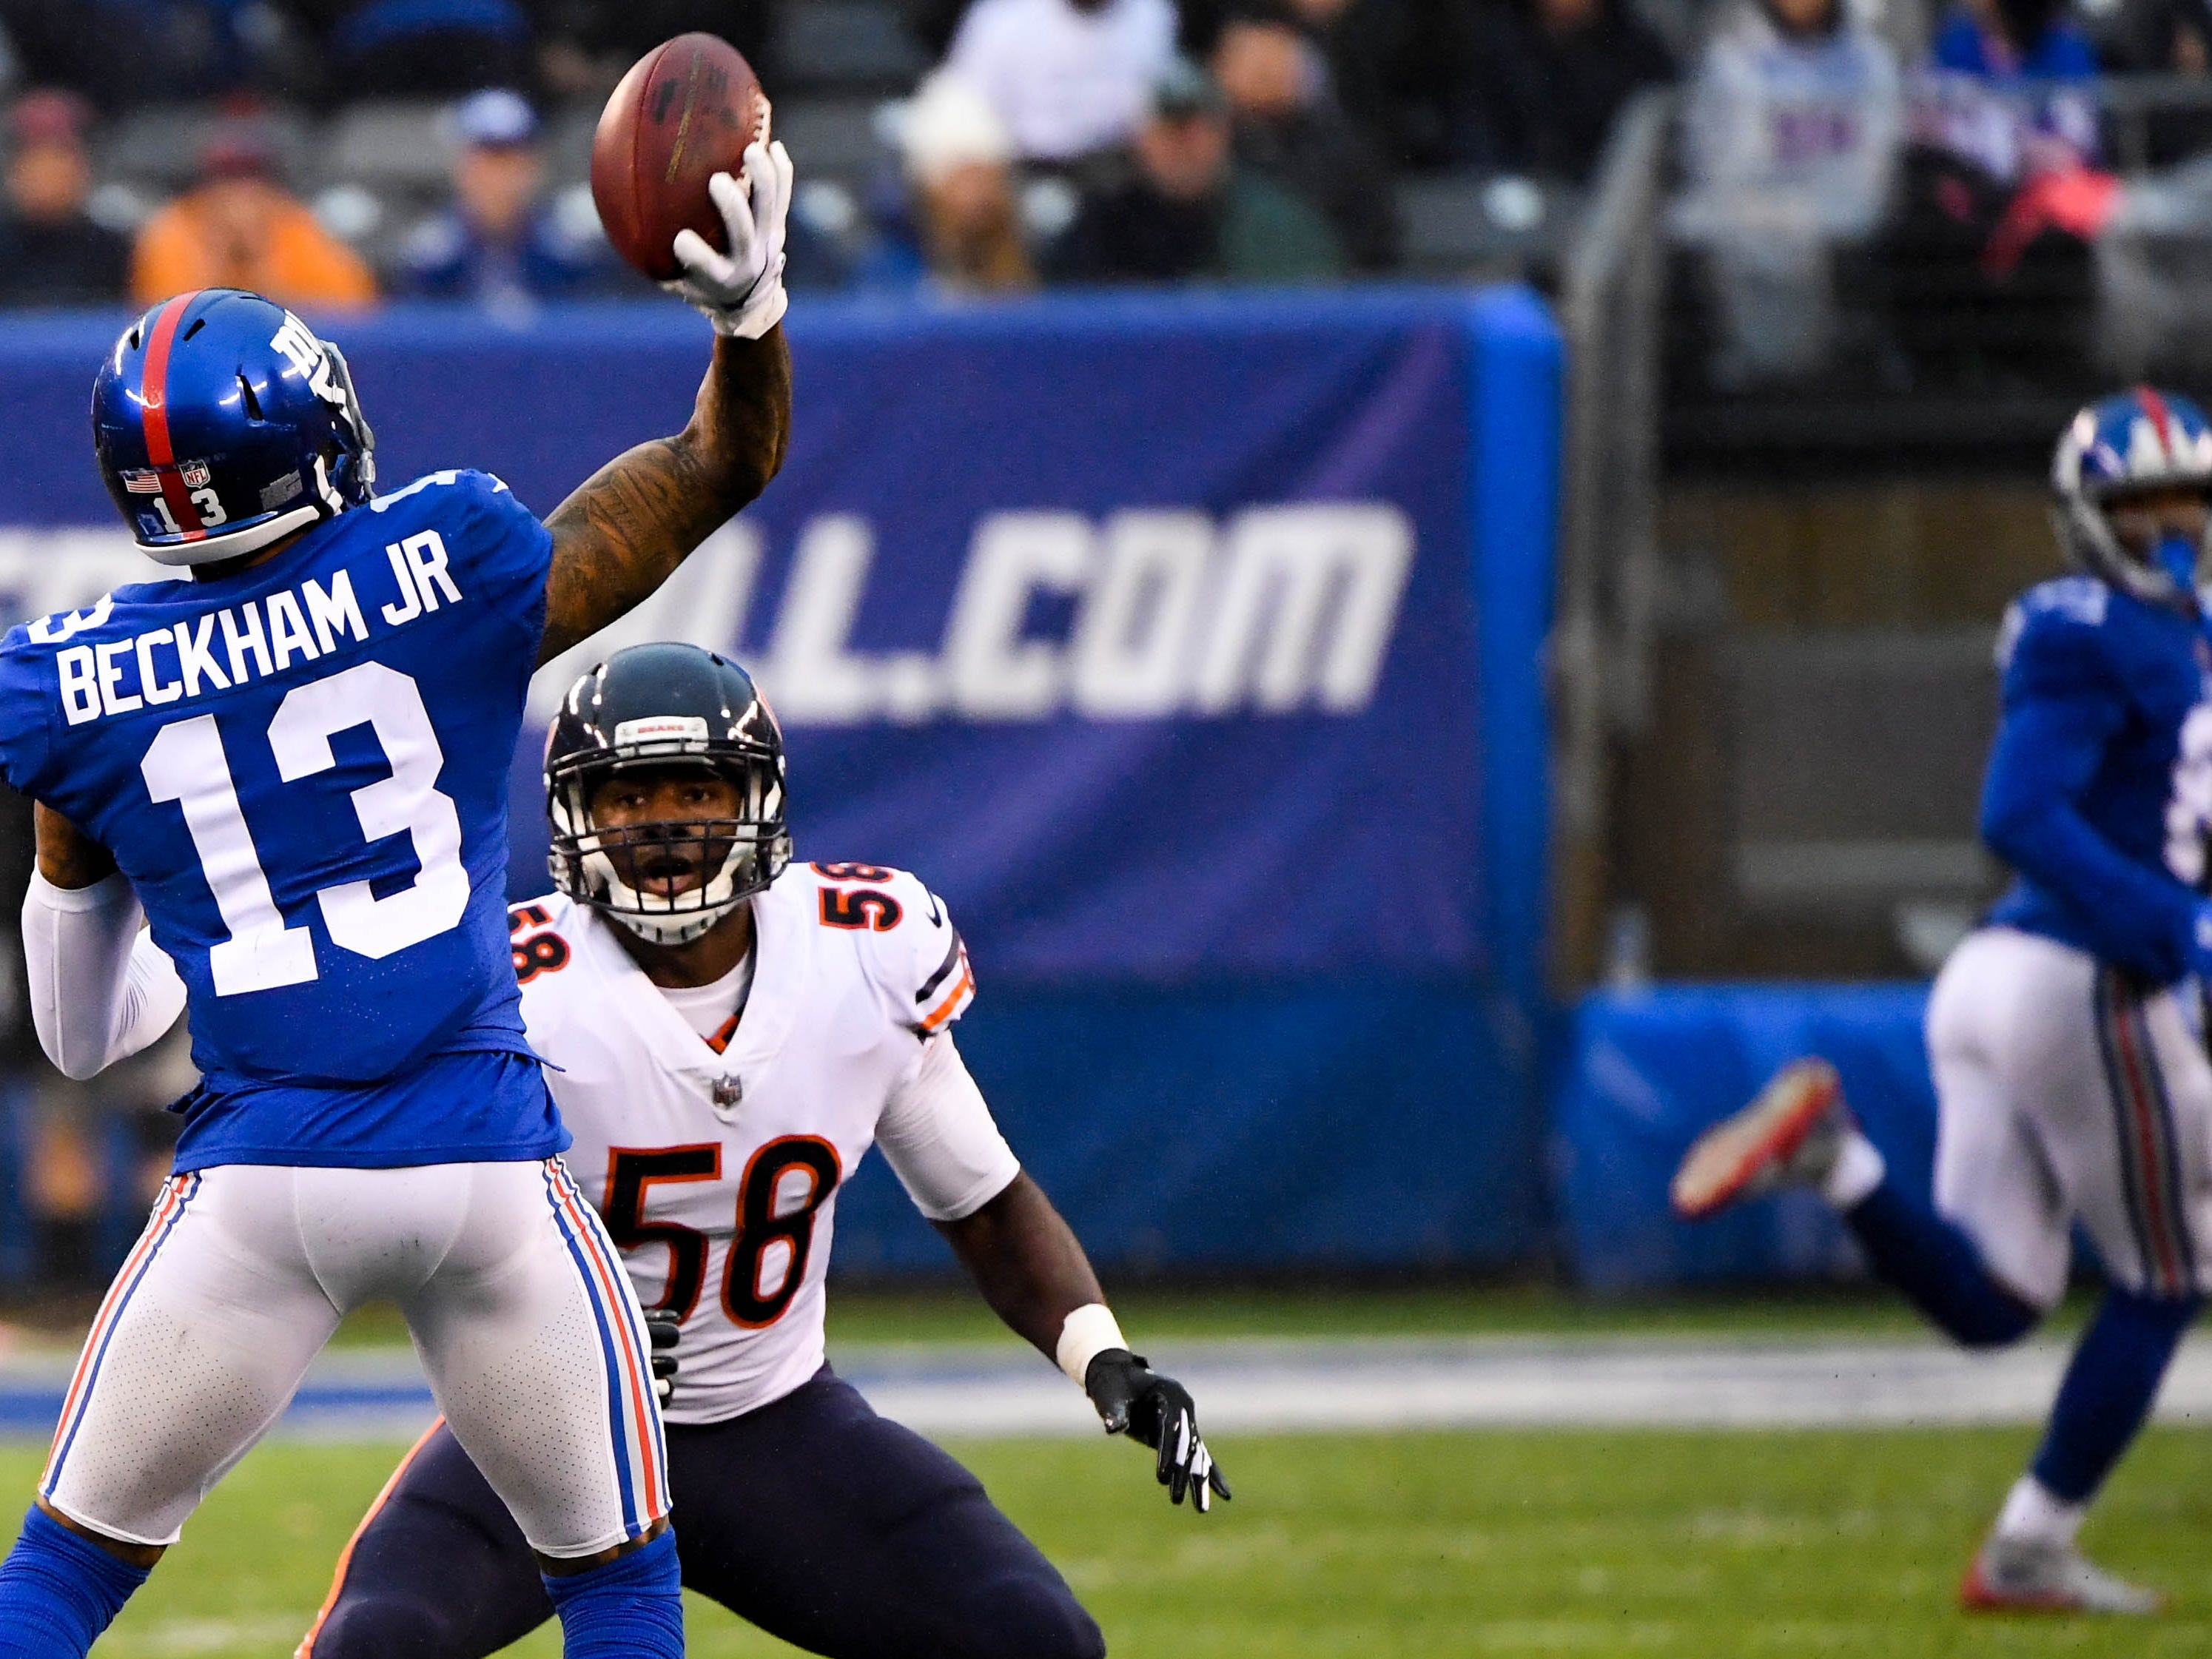 Week 13: New York Giants wide receiver Odell Beckham Jr. throws a touchdown pass to Russell Shepard in the third quarter against the Bears at MetLife Stadium. Th eGiants won the game in overtime, 30-27.